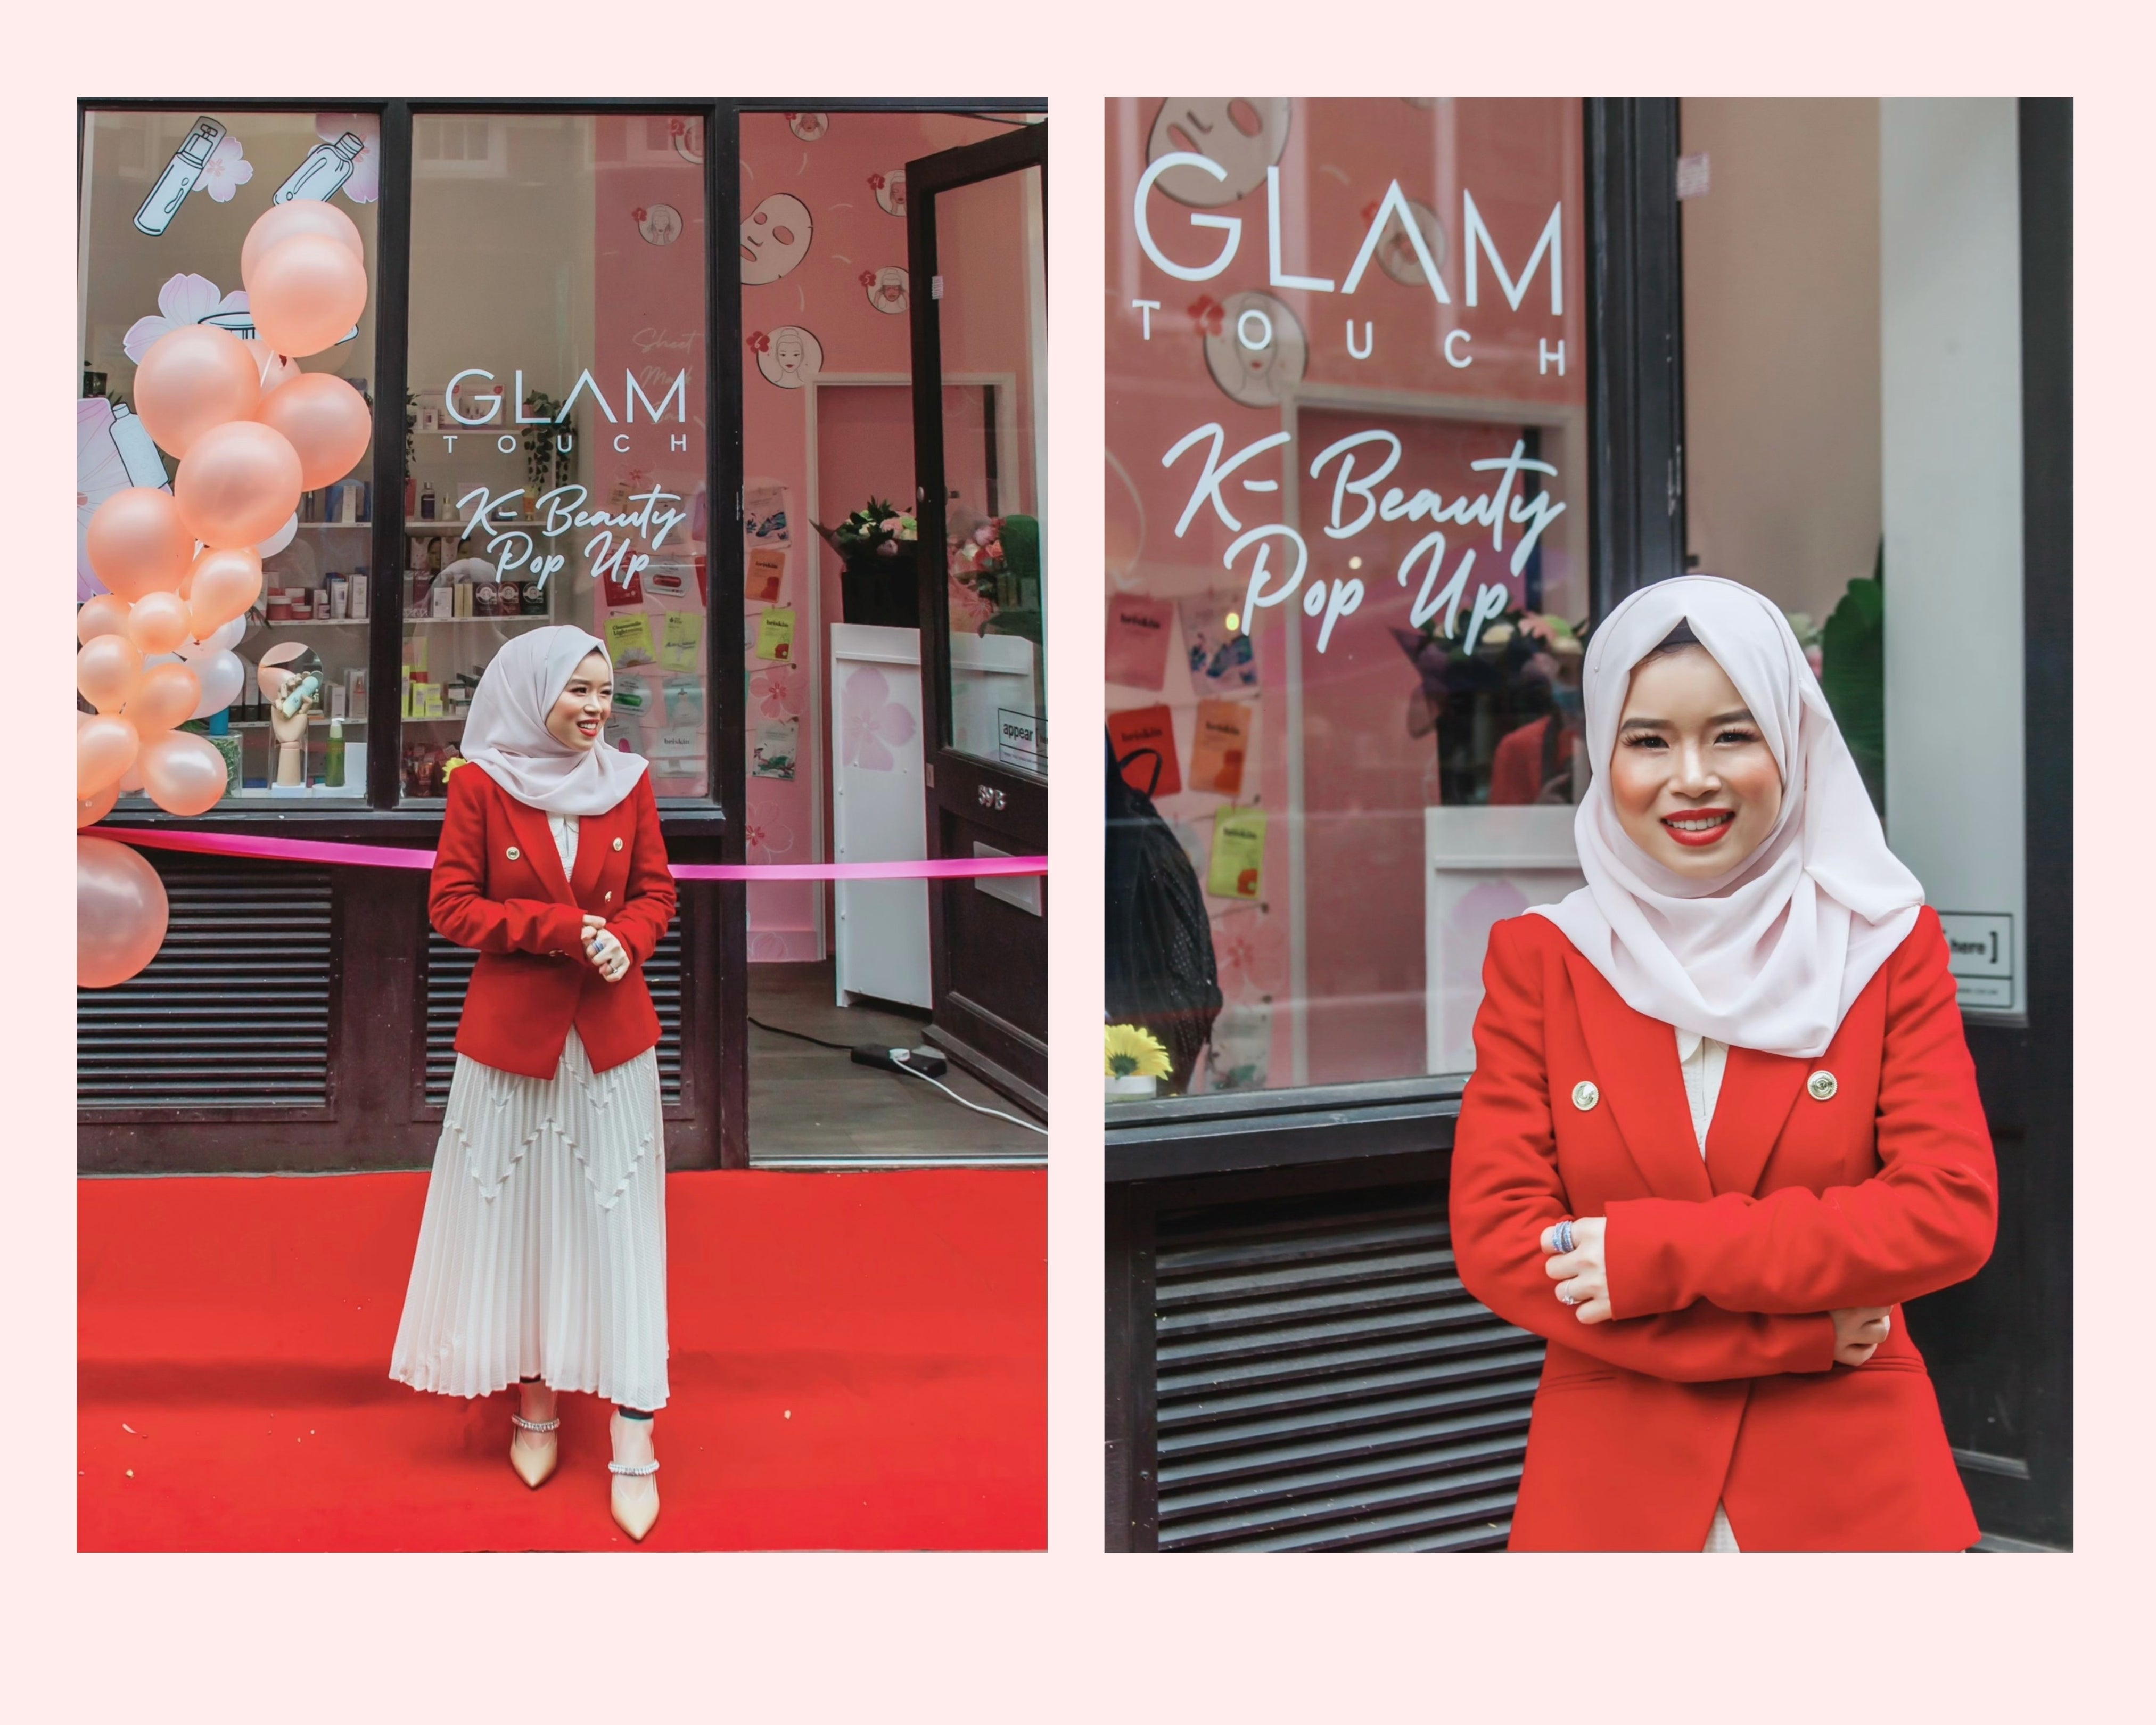 Glam Touch Soho Pop-up